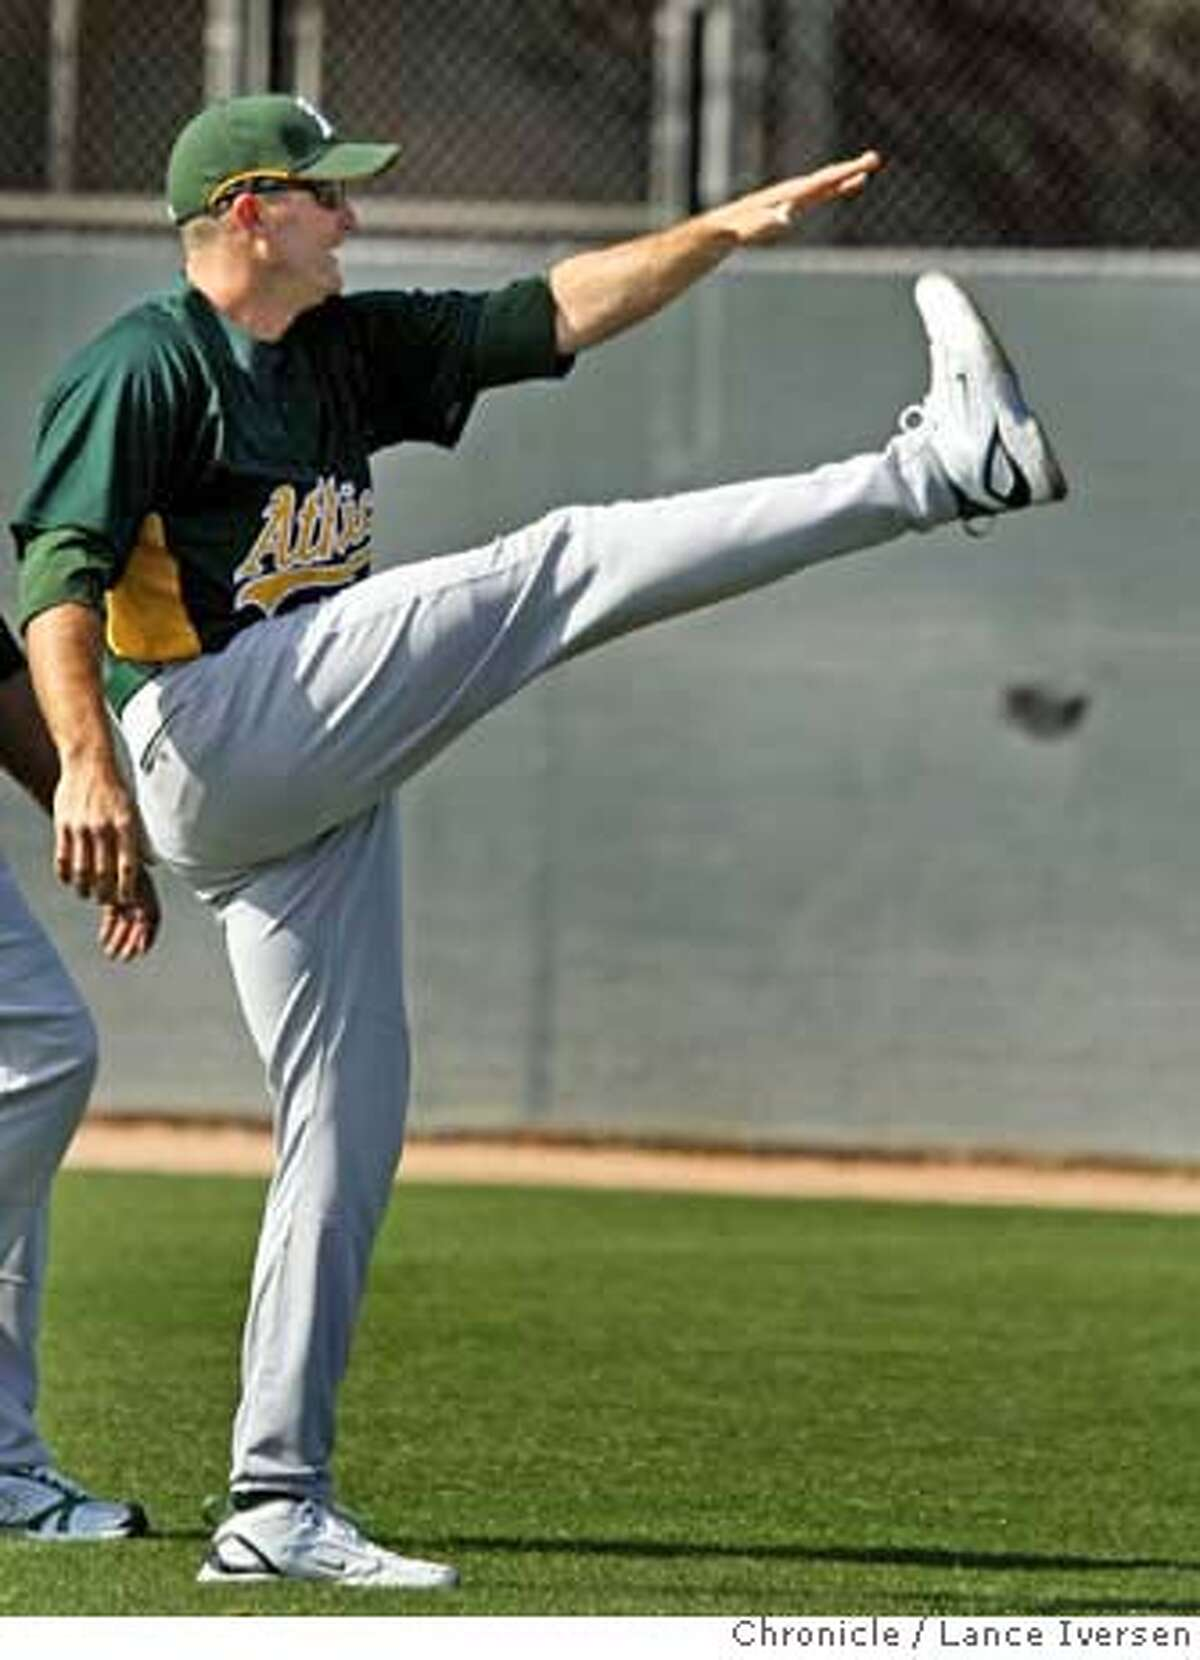 A's first baseman Mike Sweeney stretches during his daily morning workout. Pitchers and catchers warm up on the infield at Papago Park, home of the Oakland Athletics for spring training in Phoenix, Saturday morning. By Lance Iversen/The San Francisco Chronicle MANDATORY CREDIT PHOTOG AND SAN FRANCISCO CHRONICLE/NO SALES MAGS OUT